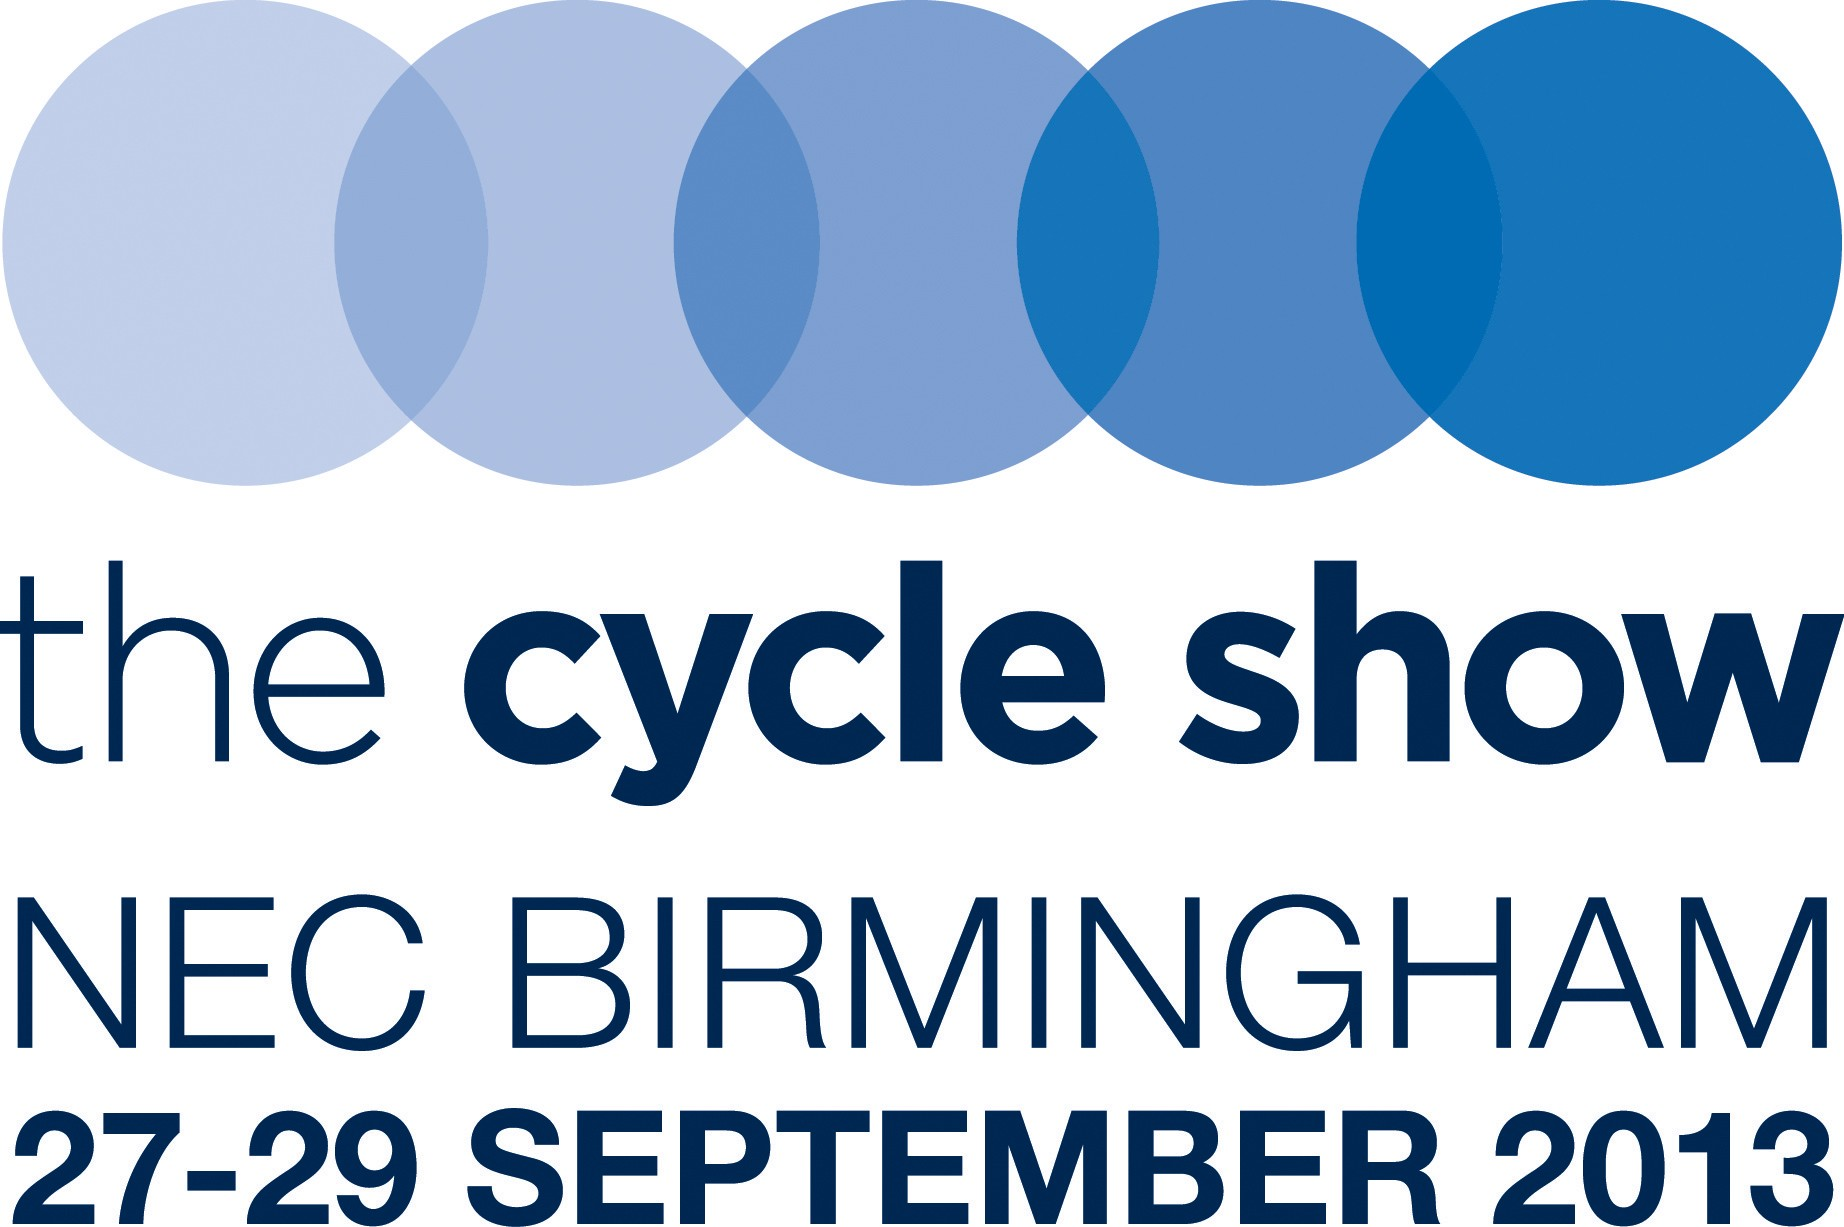 Get 11 percent off tickets to The Cycle Show 2013 with BikeRadar